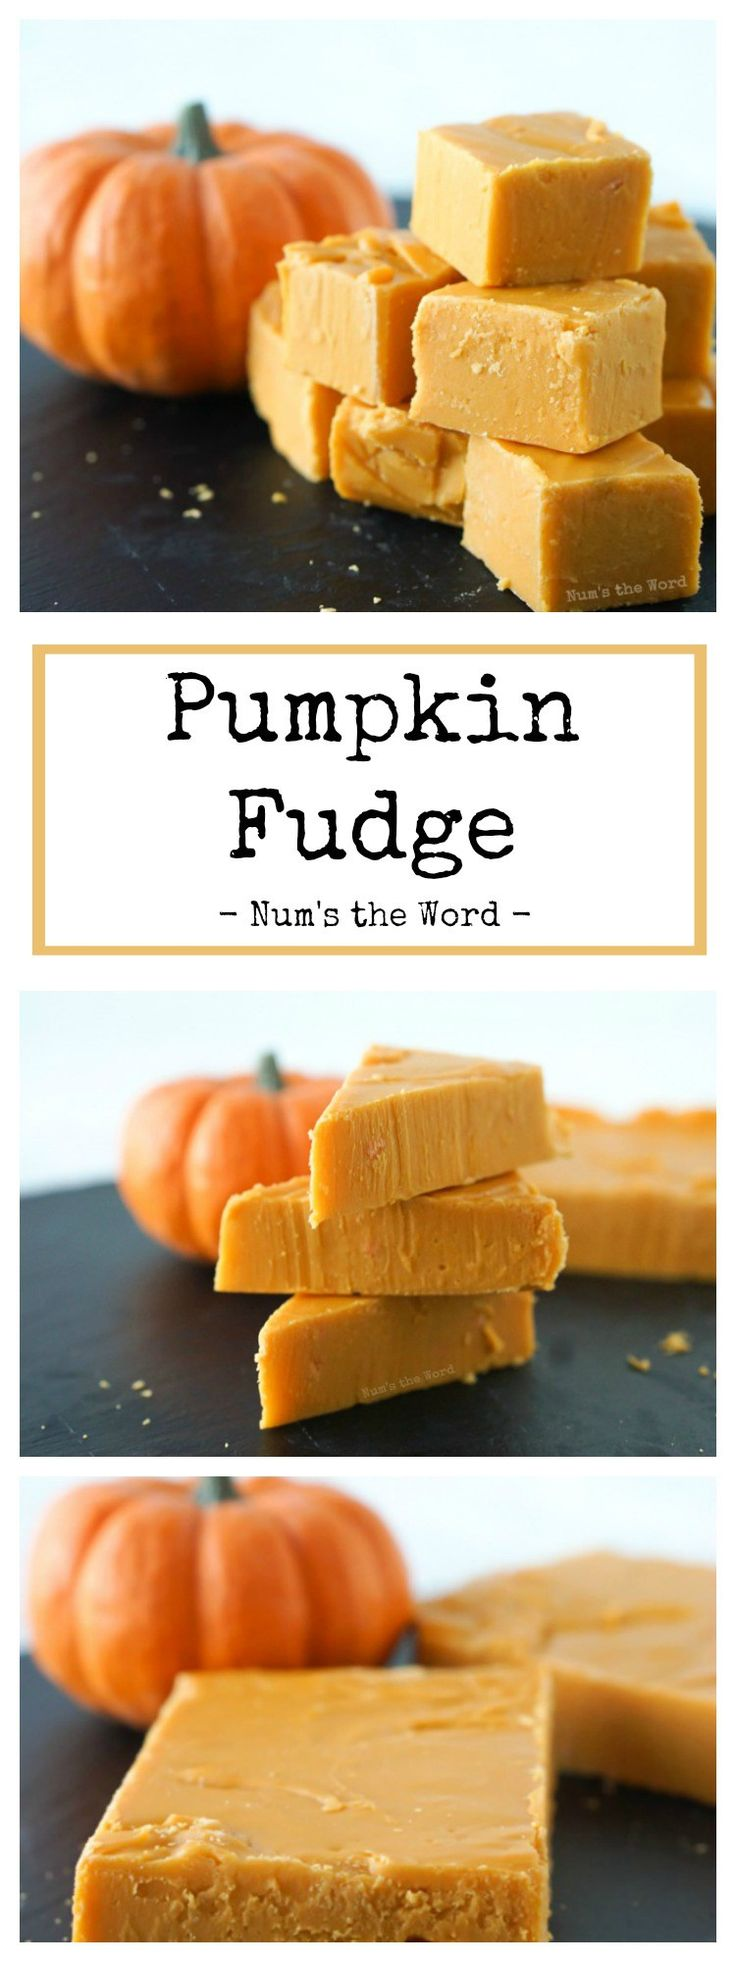 This Pumpkin Fudge Recipe takes 15 minutes to make and an hour to chill before you can sink your teeth into it. Everyone who tries it raves about how creamy and smooth the texture is and asks for the recipe! #fudge #homemadefudge #creamyfudge #pumpkin #pumpkinspice #pumpkinfudge #pumpkinspicefudge #autumn #gift #numstheword #dessert #recipe